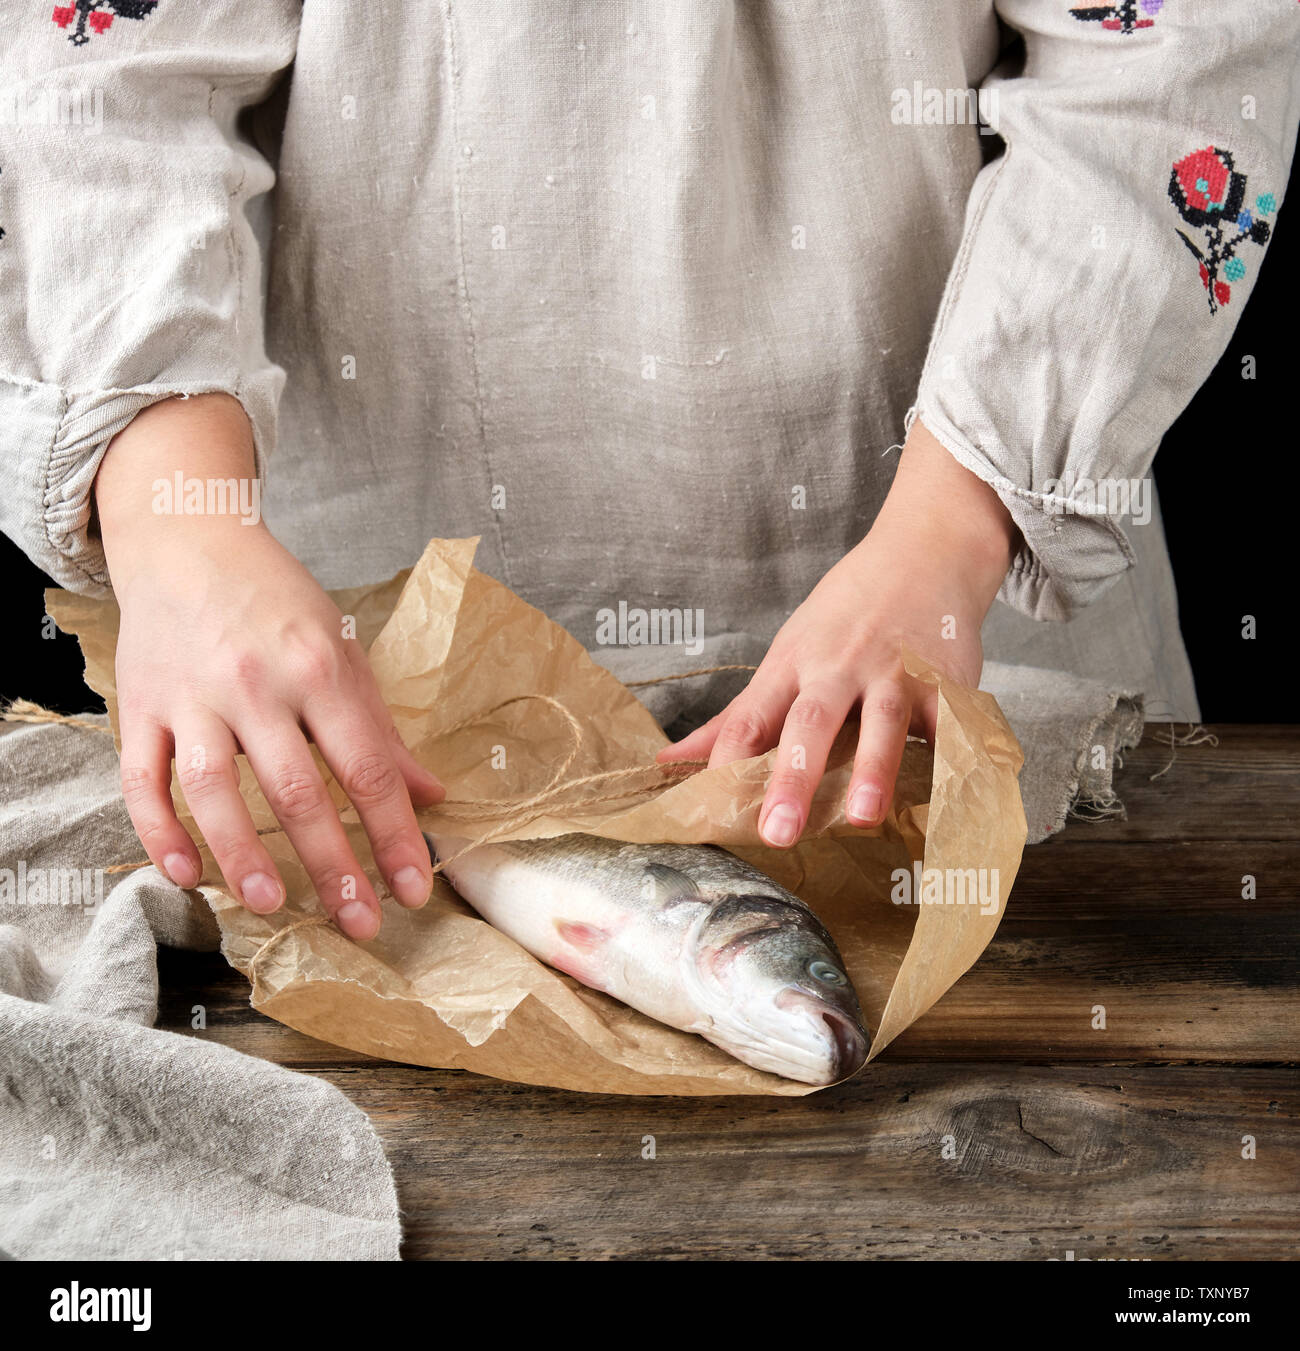 female hands are wrapped in brown paper whole fresh sea bass fish on a wooden table, black background - Stock Image